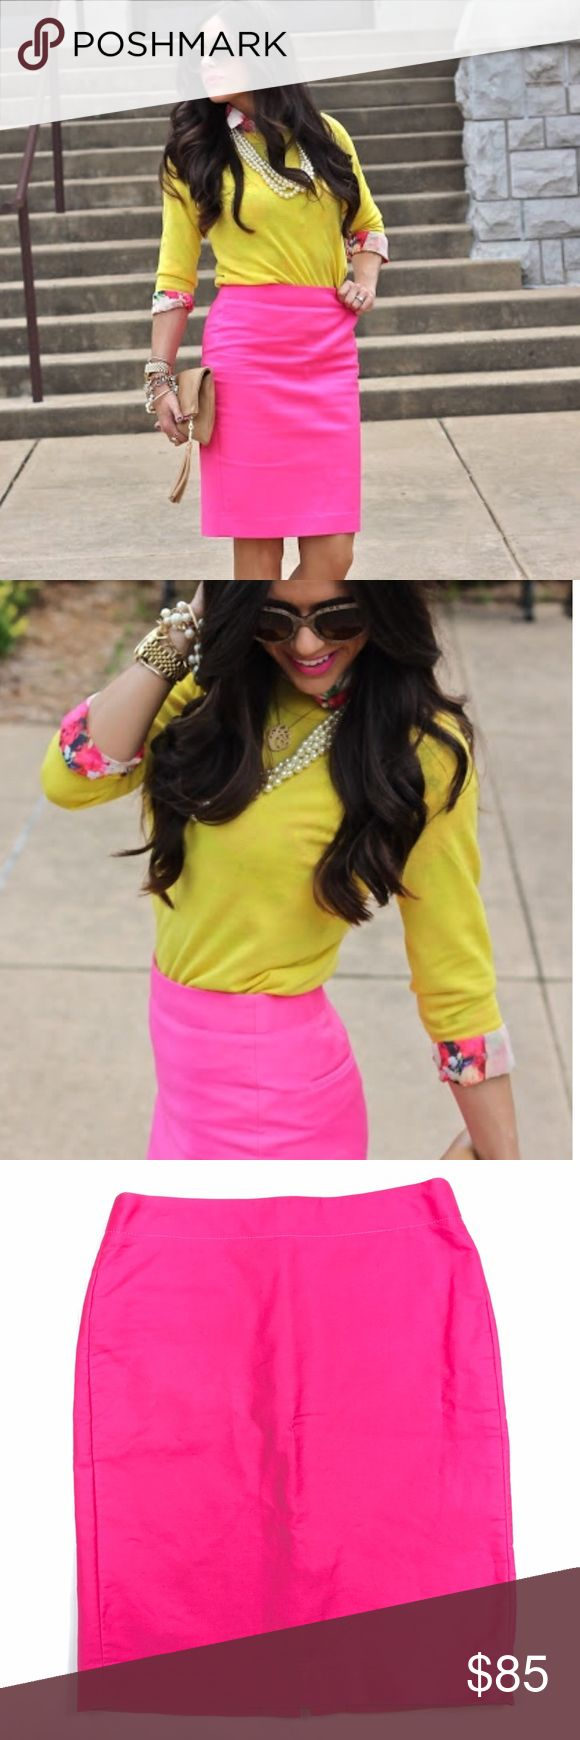 J. Crew Hot Pink # 2 Pencil Skirt Brand new WITHOUT tags! Trendy and classic! Stunning hot pink color. J. Crew Skirts